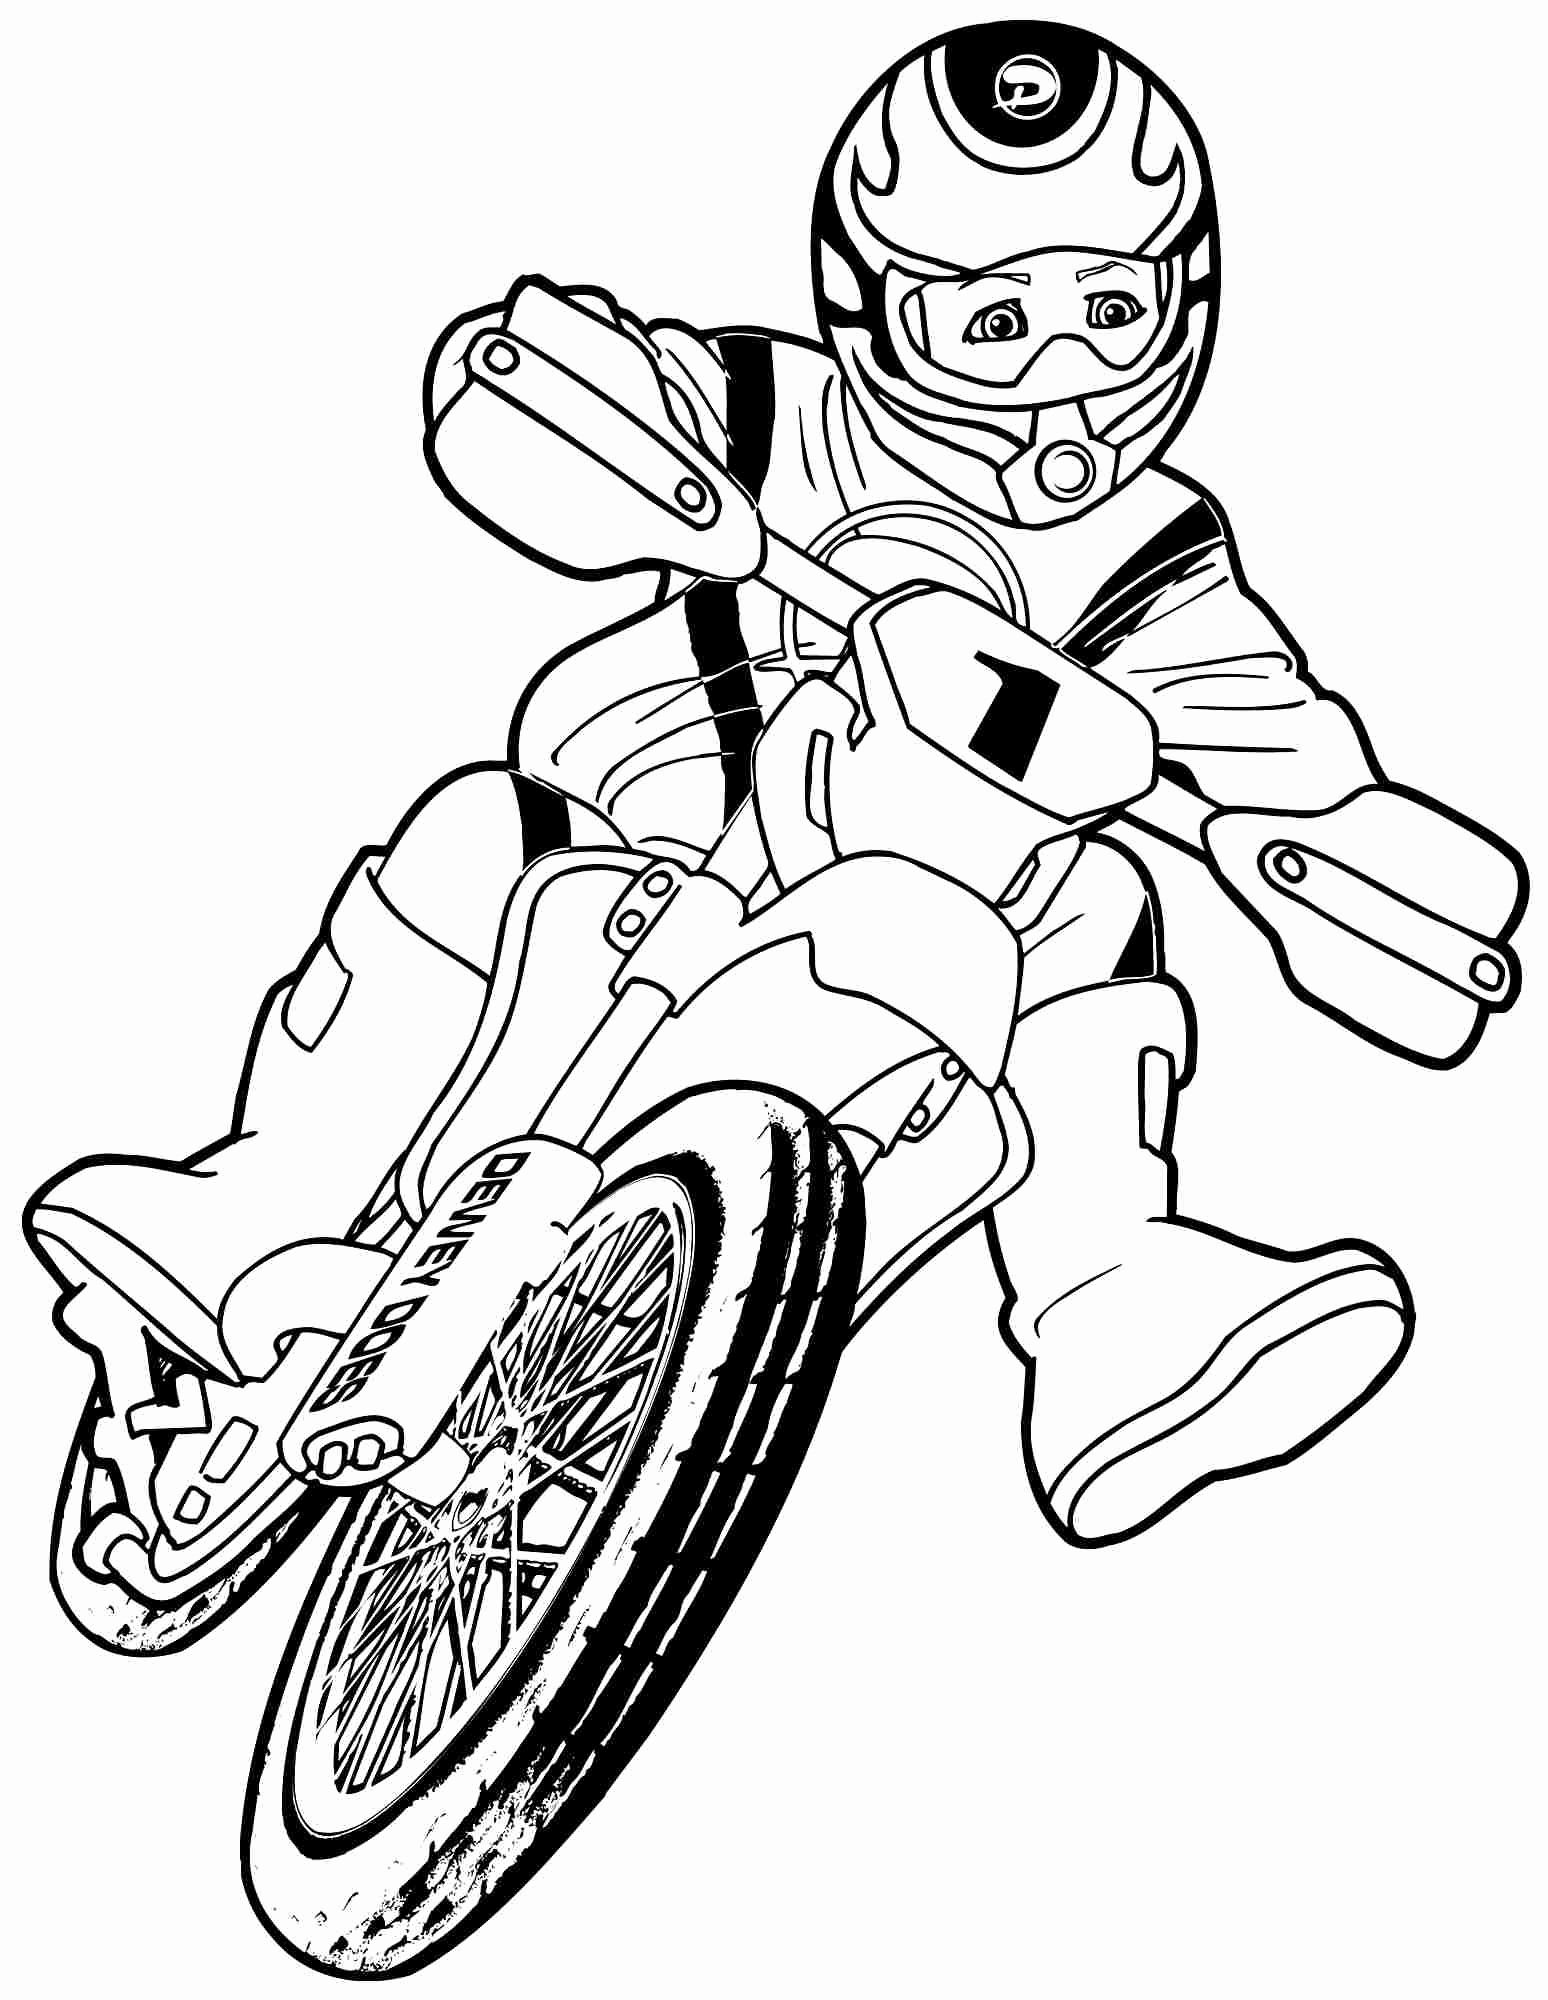 Pin By Csonkane Stumpf On Manualidades Race Car Coloring Pages Cars Coloring Pages Coloring Pages For Boys